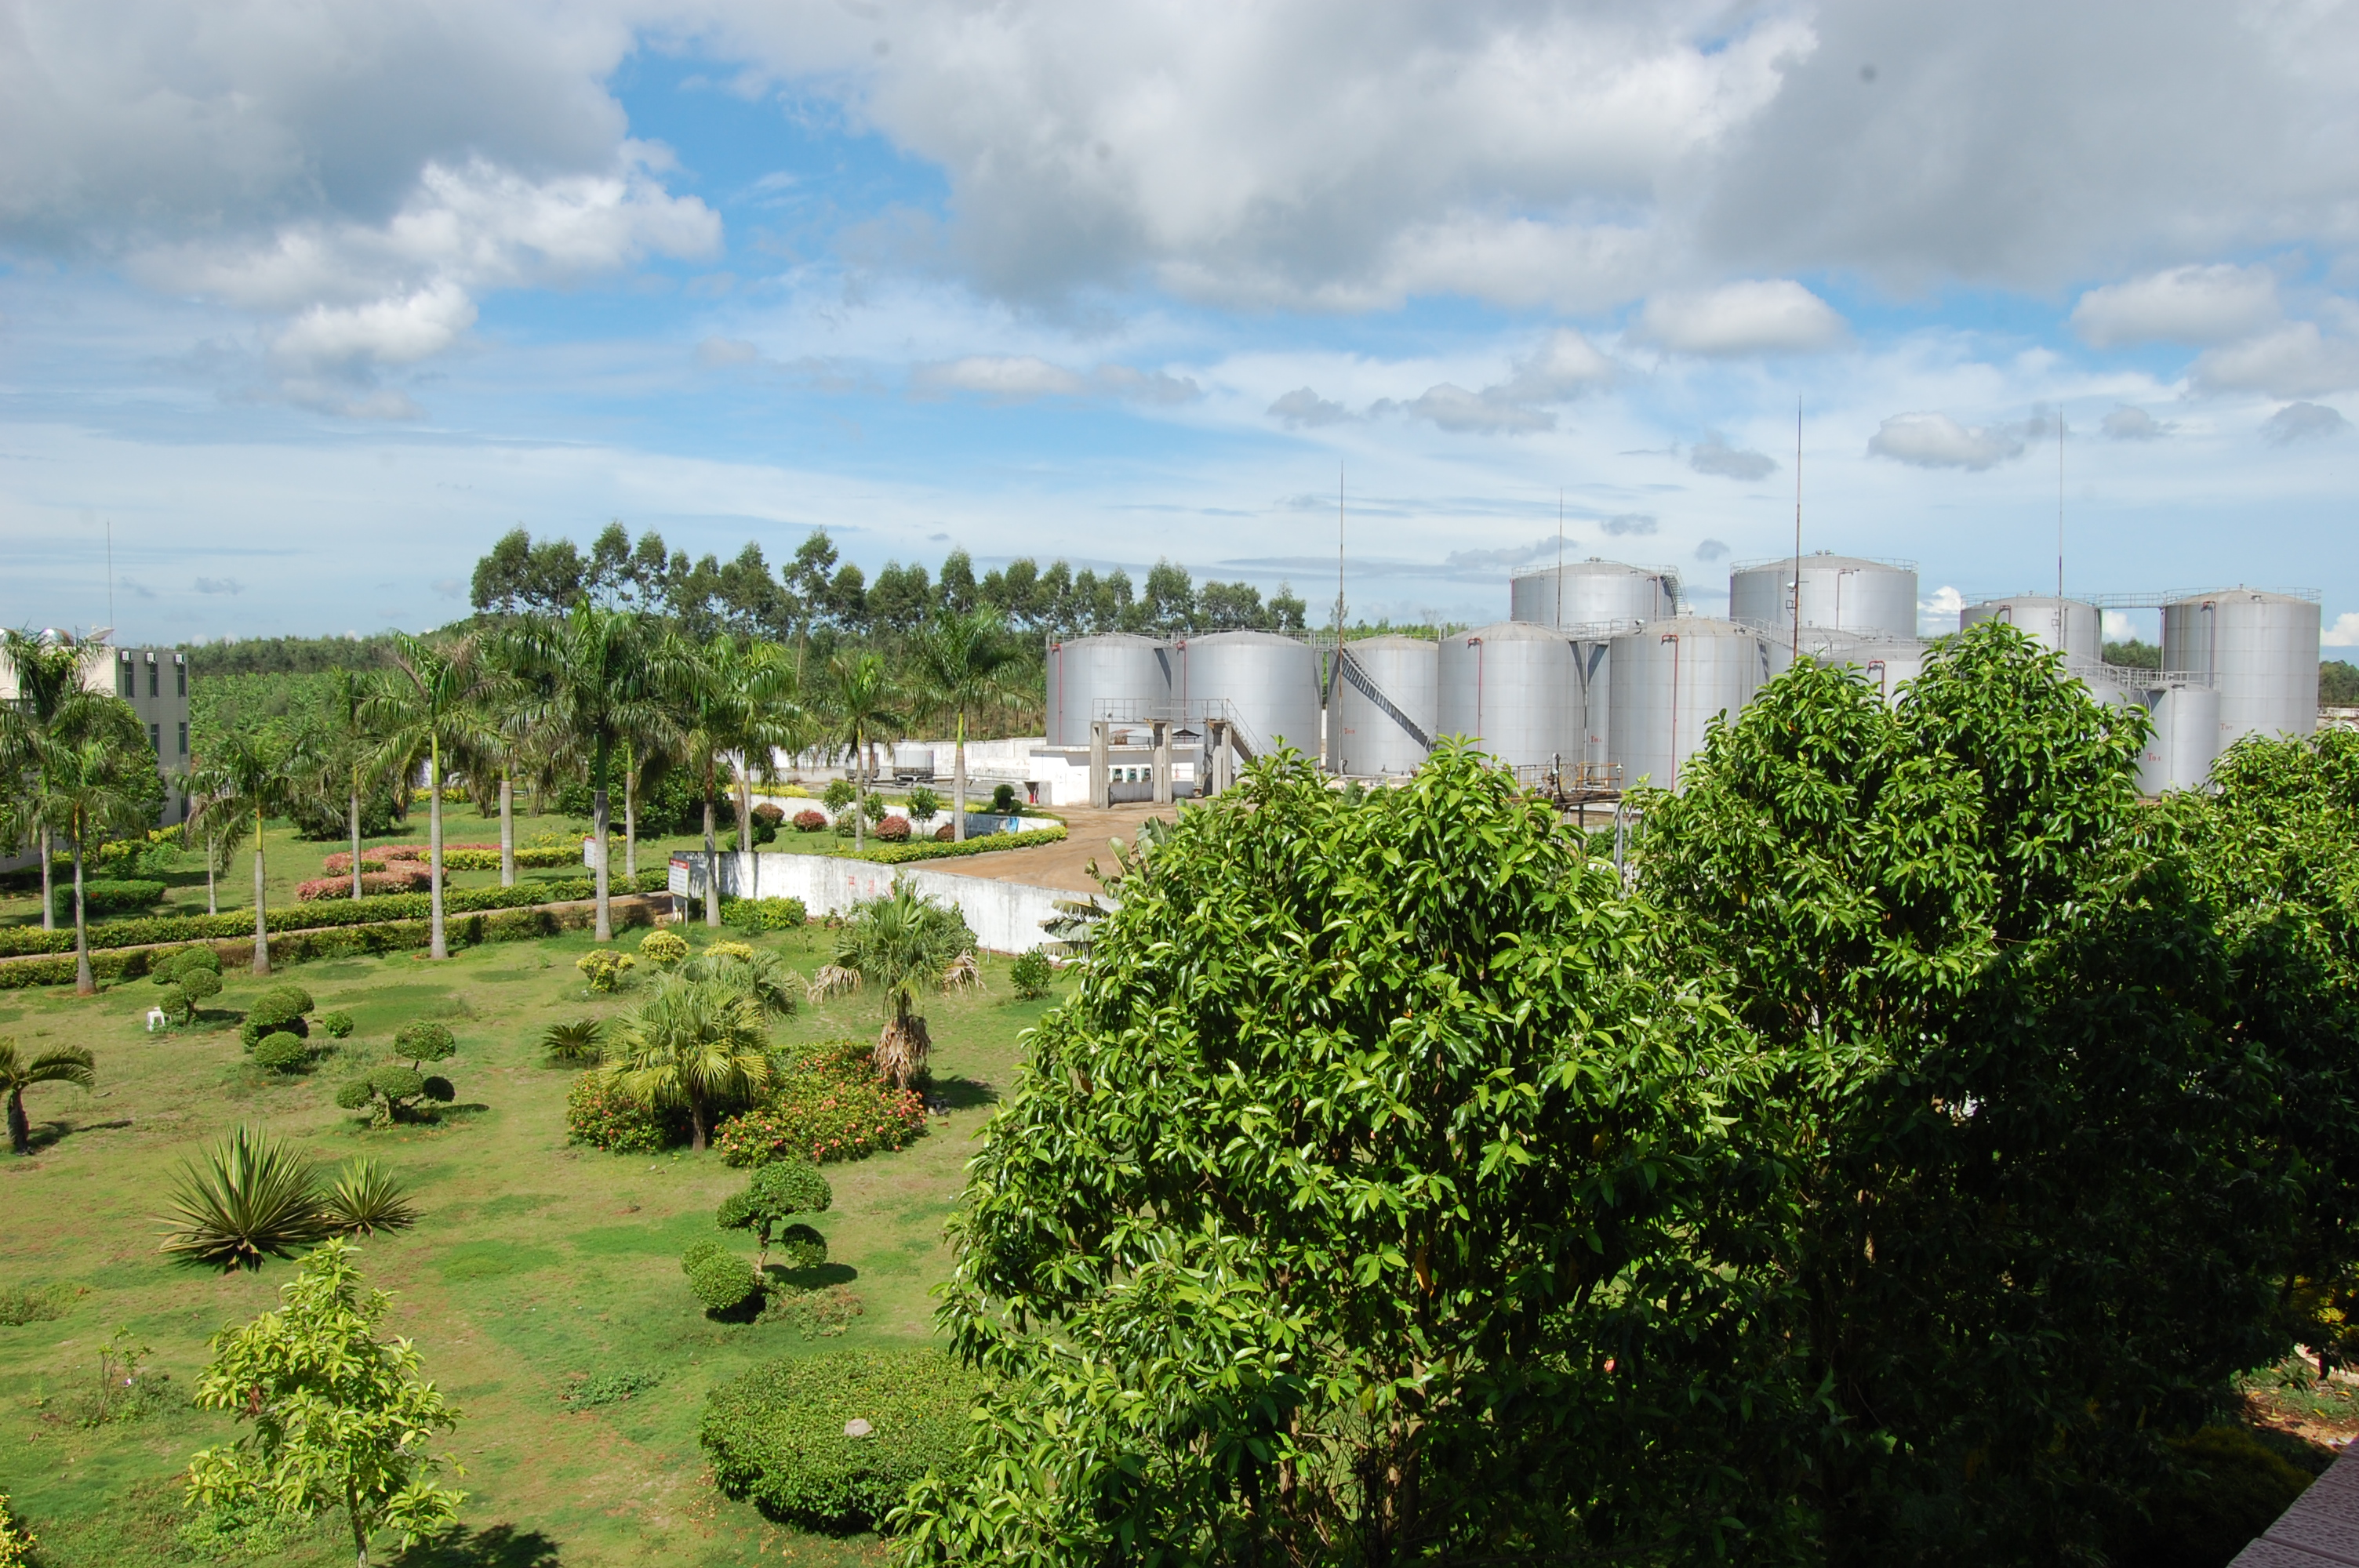 http://a.eqcdn.com/chinaintegratedenergyinc/files/pages/business-units/biodiesel-production-sales/potential-acquisition/pa3.jpg